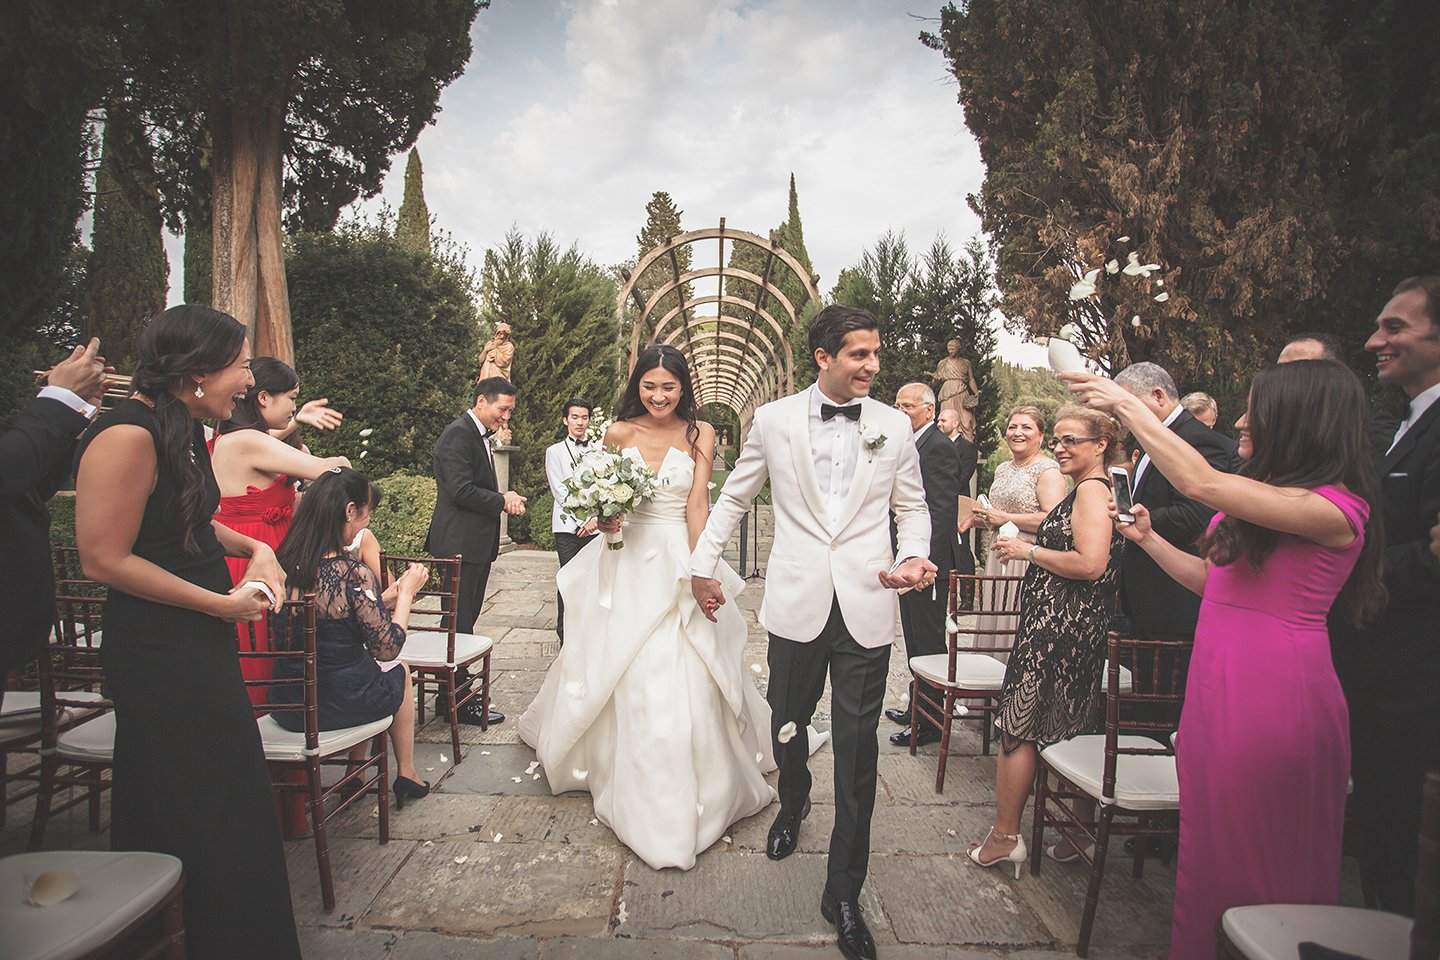 confetti-throwing-outdoor-blessing-wedding-ceremony-tuscany-Vignamaggio